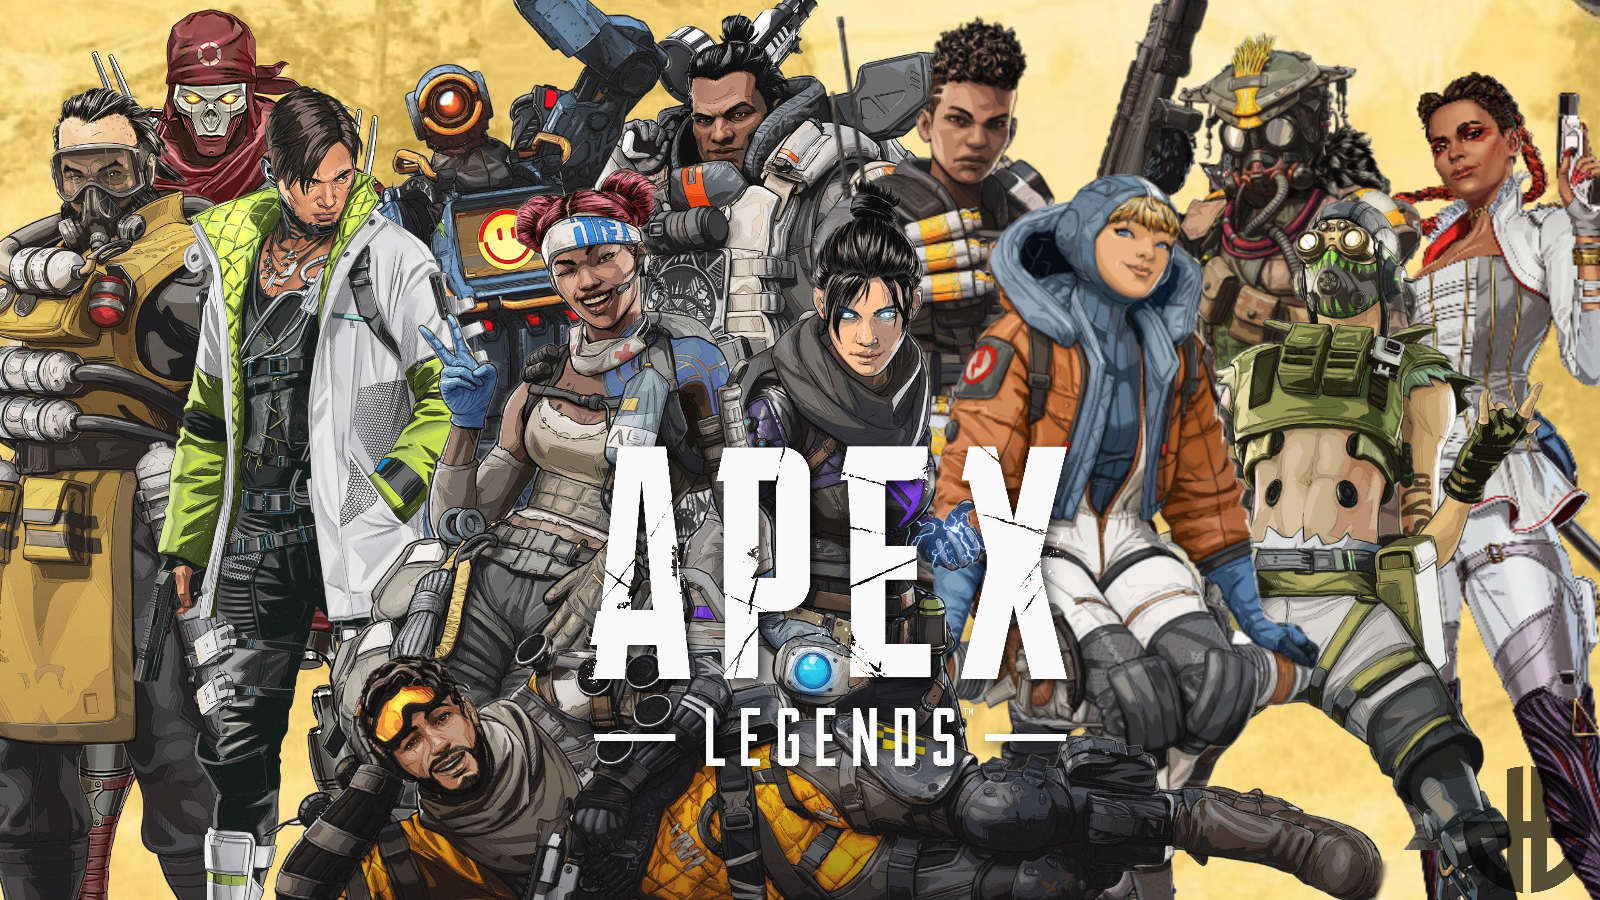 Apex Legends Rule 34 Explained: What Is Rule 34?